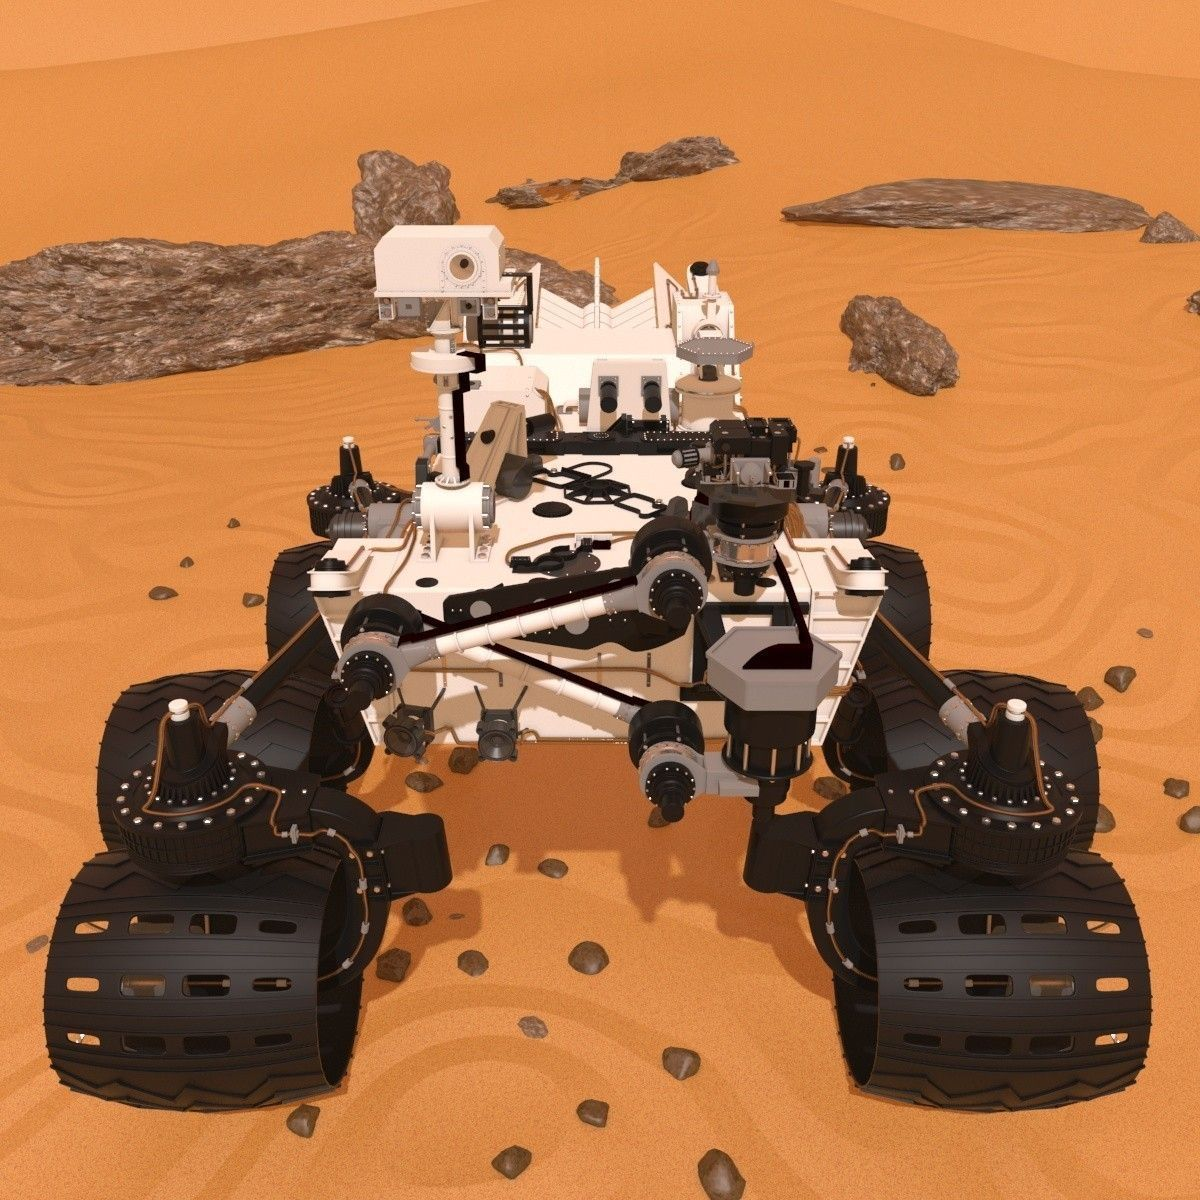 curiosity rover scale model - photo #15